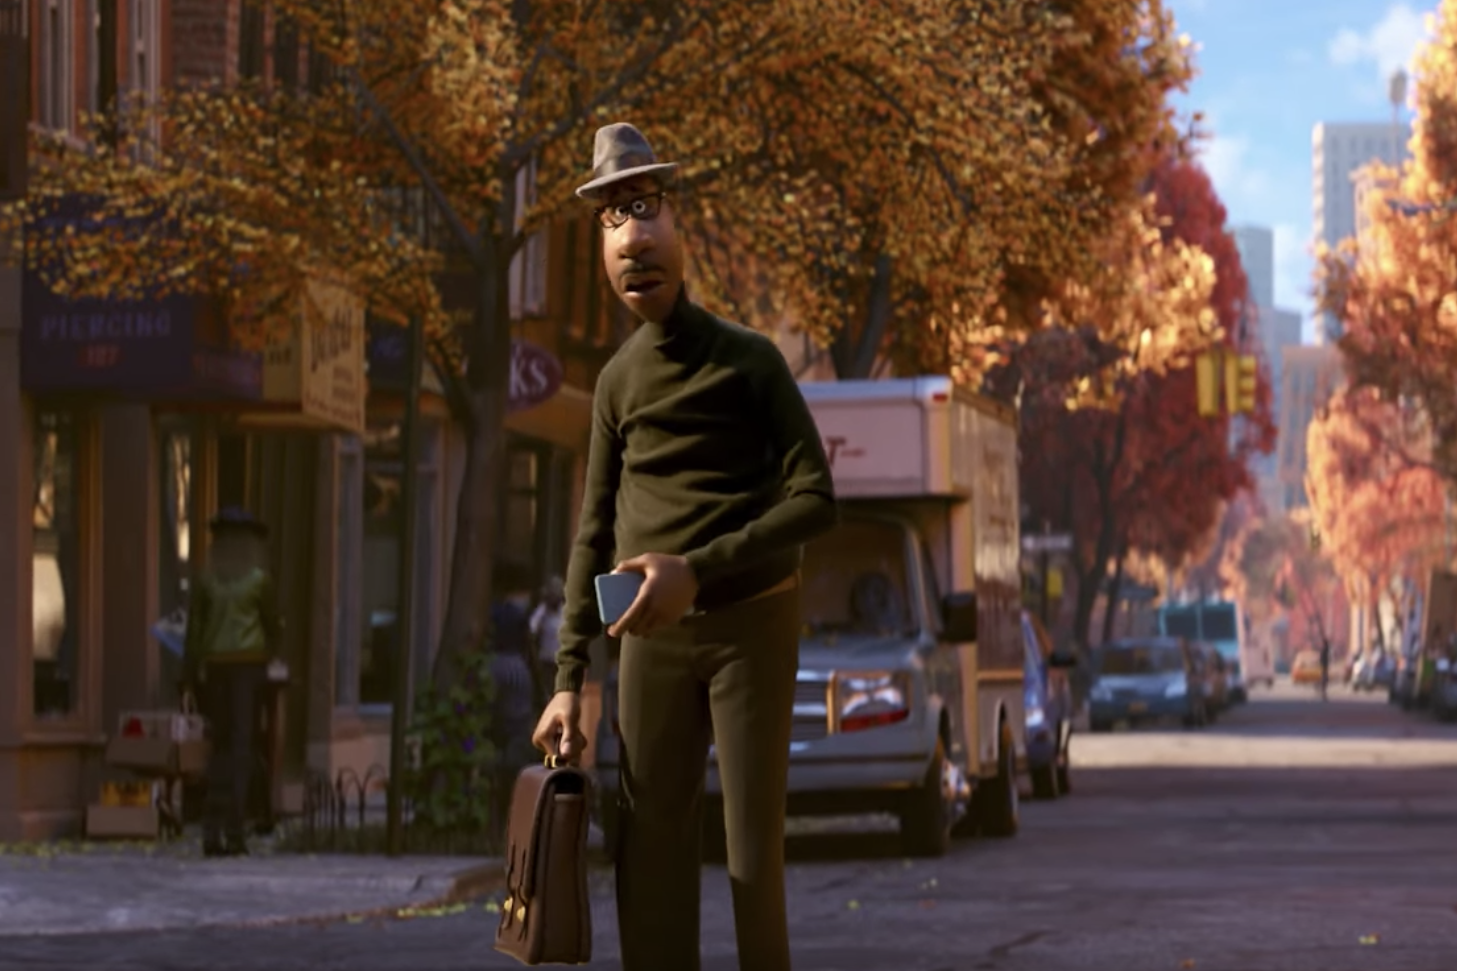 Soul: Pixar unveils emotional first trailer for film starring Jamie Foxx and Tina Fey